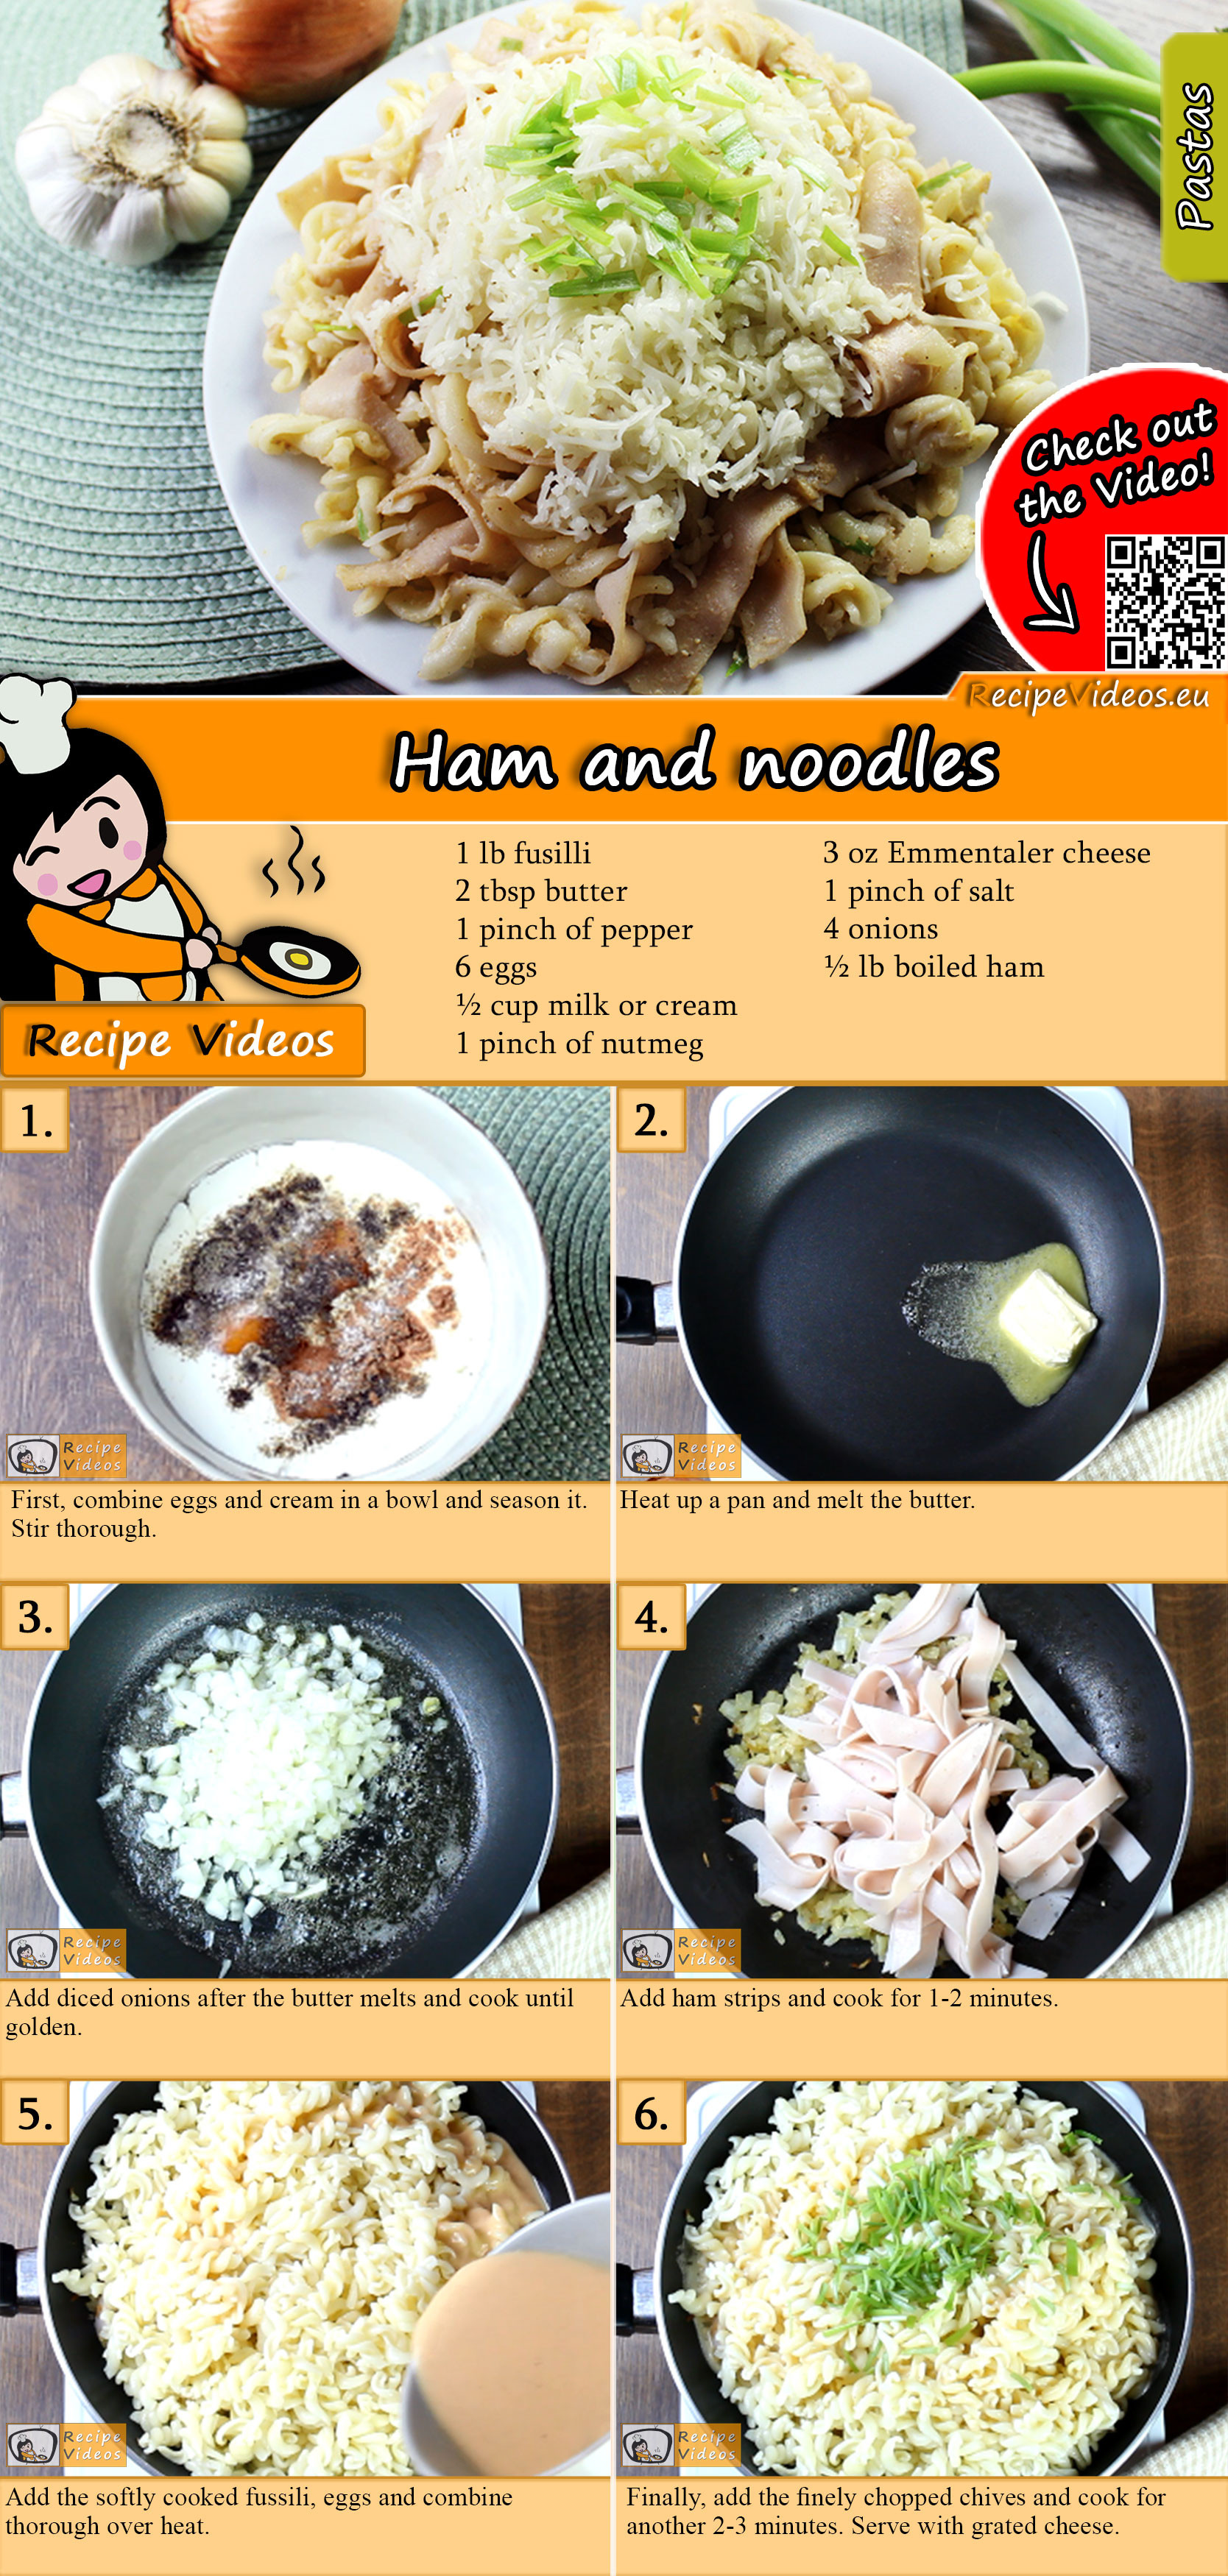 Easy ham and noodles recipe with video